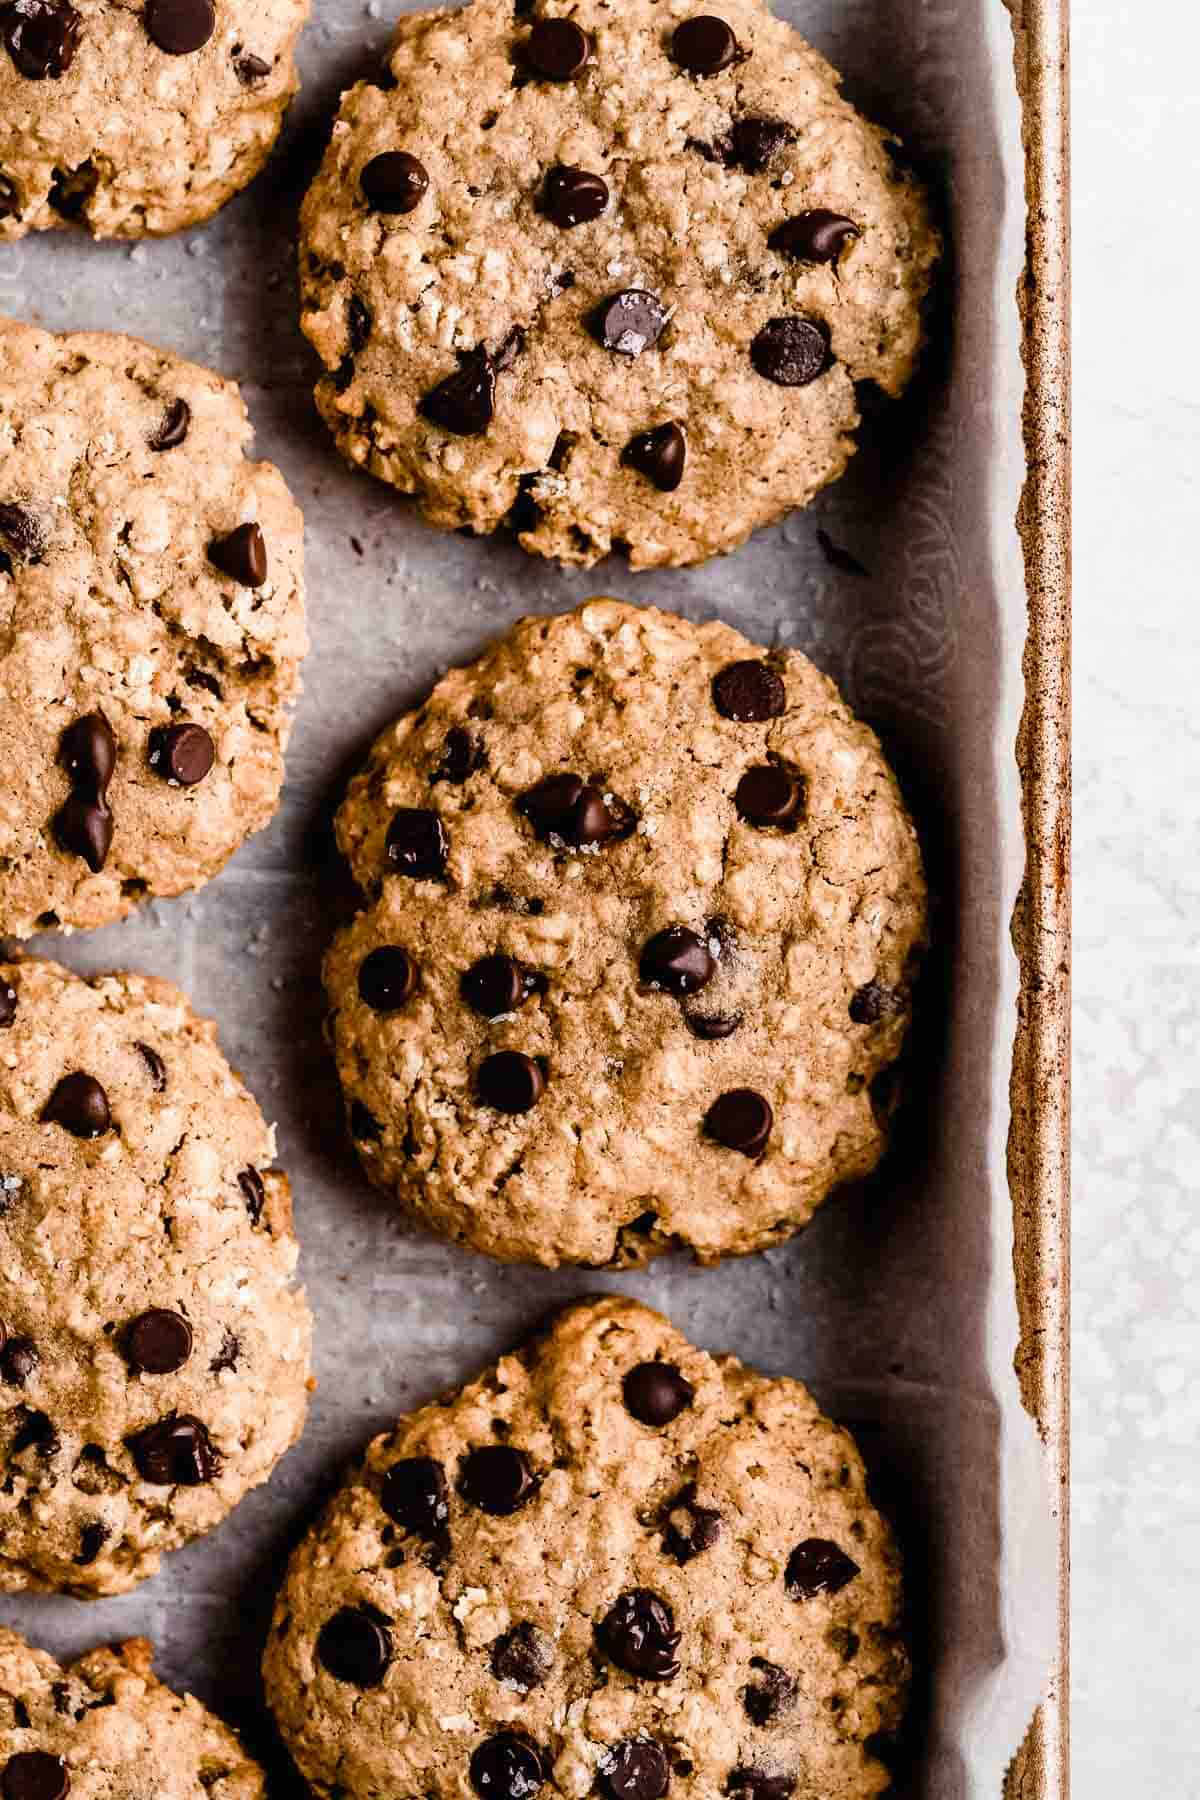 Close up overhead image of freshly baked Oatmeal Chocolate Chip Cookies on a baking sheet.